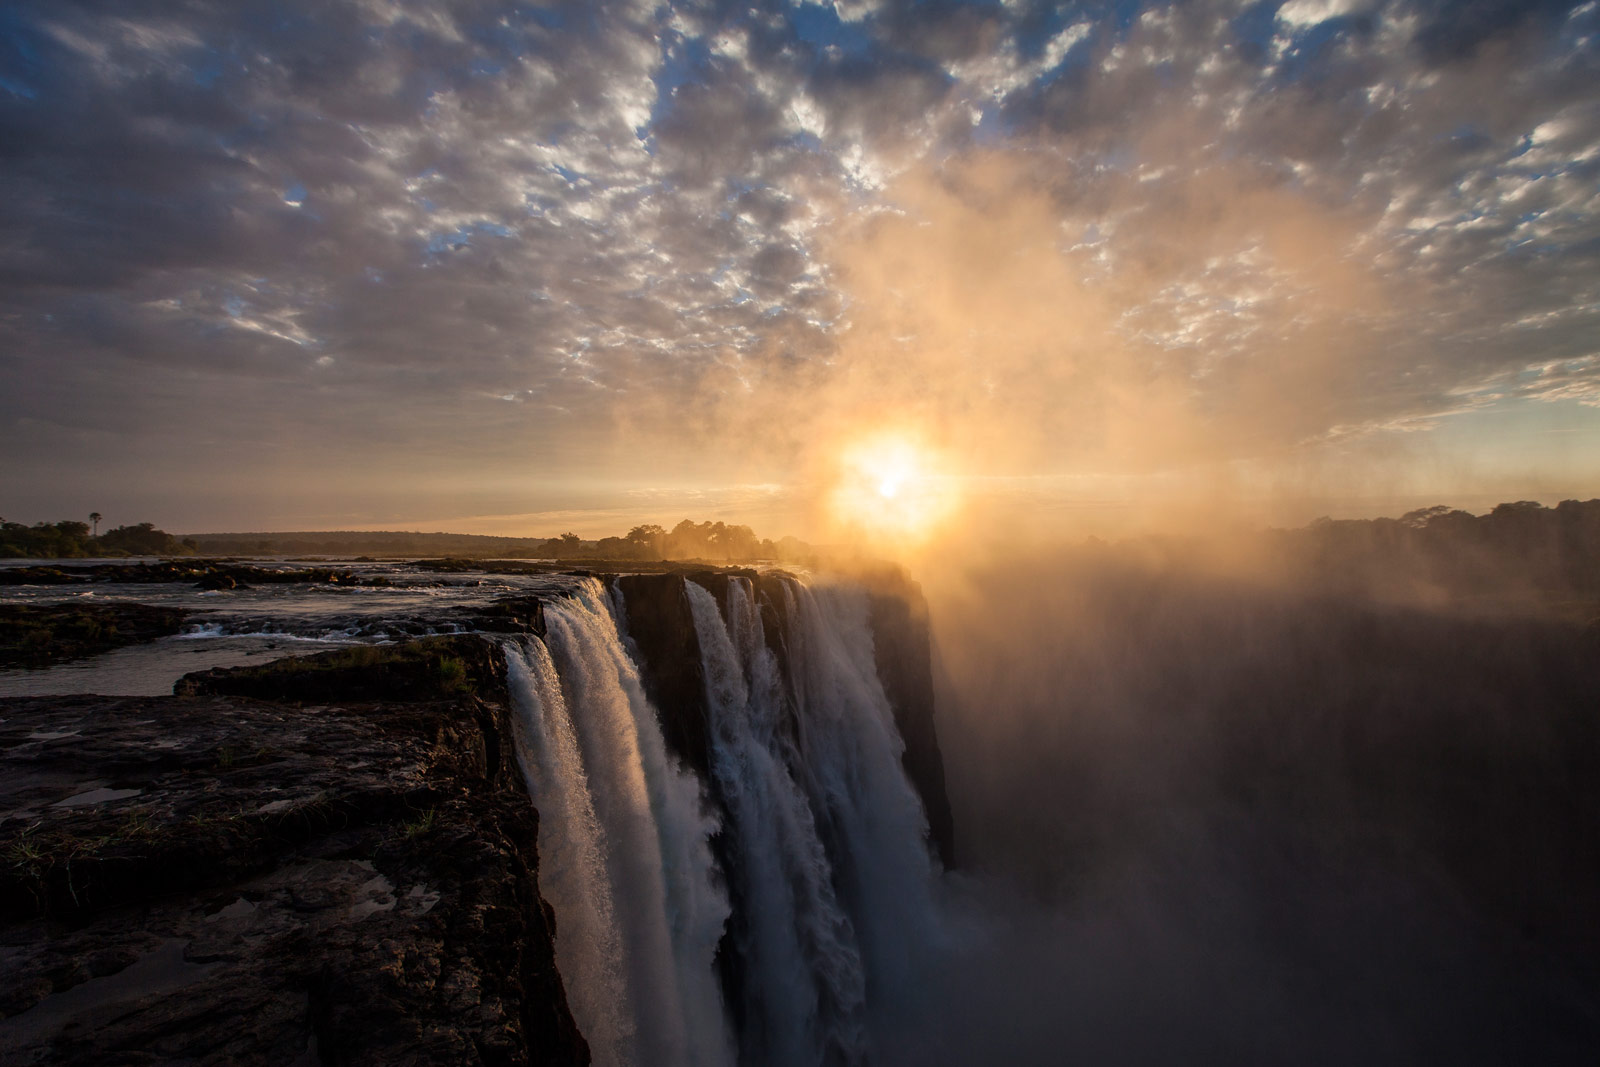 Victoria Falls Sunset Wallpaper Vic Falls Africa S Adventure Capital Africa Geographic